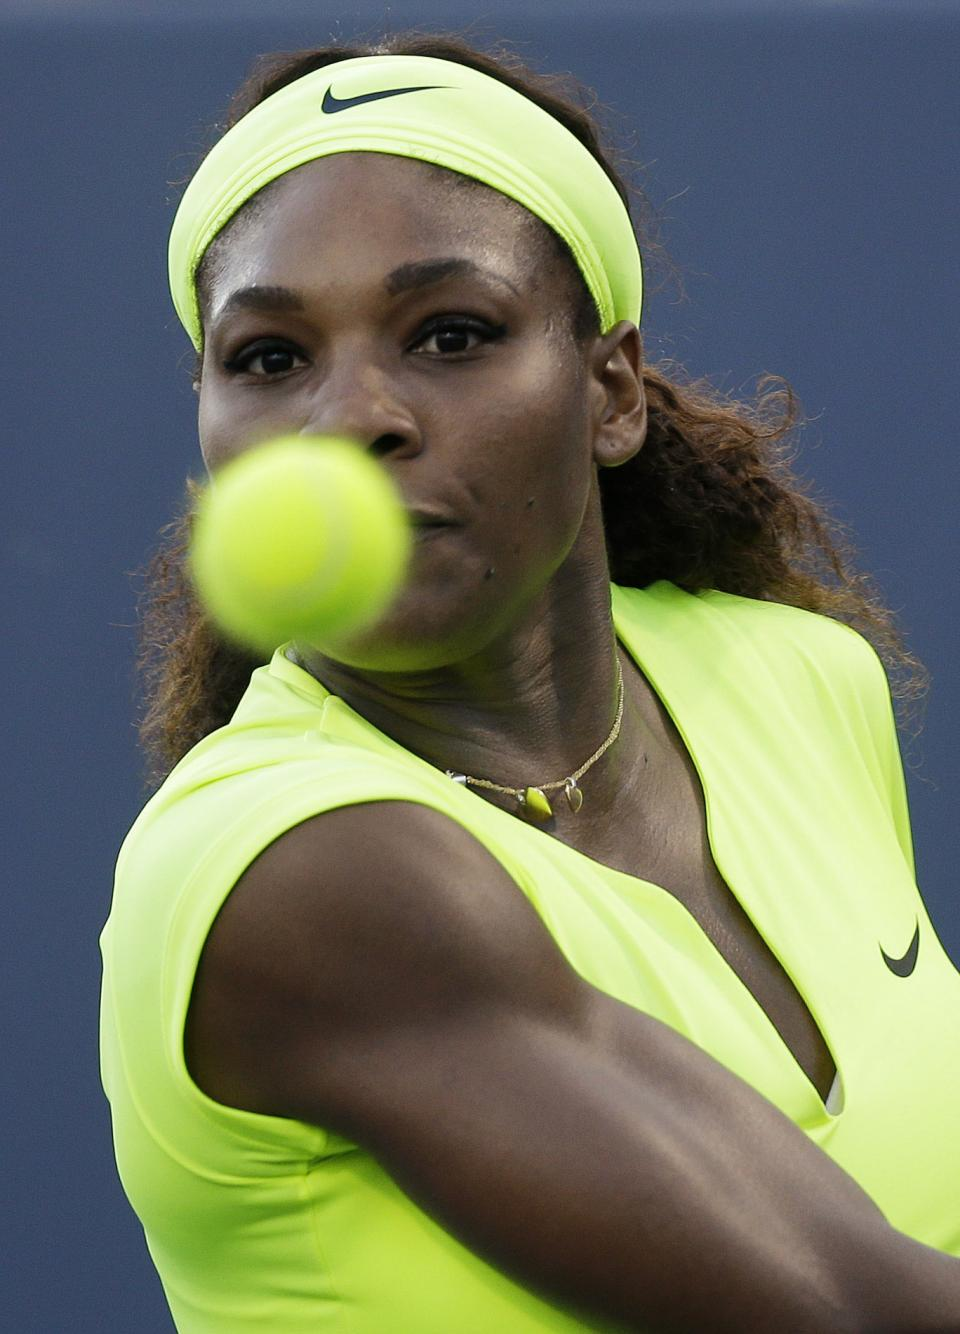 Serena Williams, of the United States, returns to Chanelle Scheepers, of South Africa, during a quarterfinal of the Bank of the West tennis tournament on Friday, July 13, 2012, in Stanford, Calif. (AP Photo/Marcio Jose Sanchez)